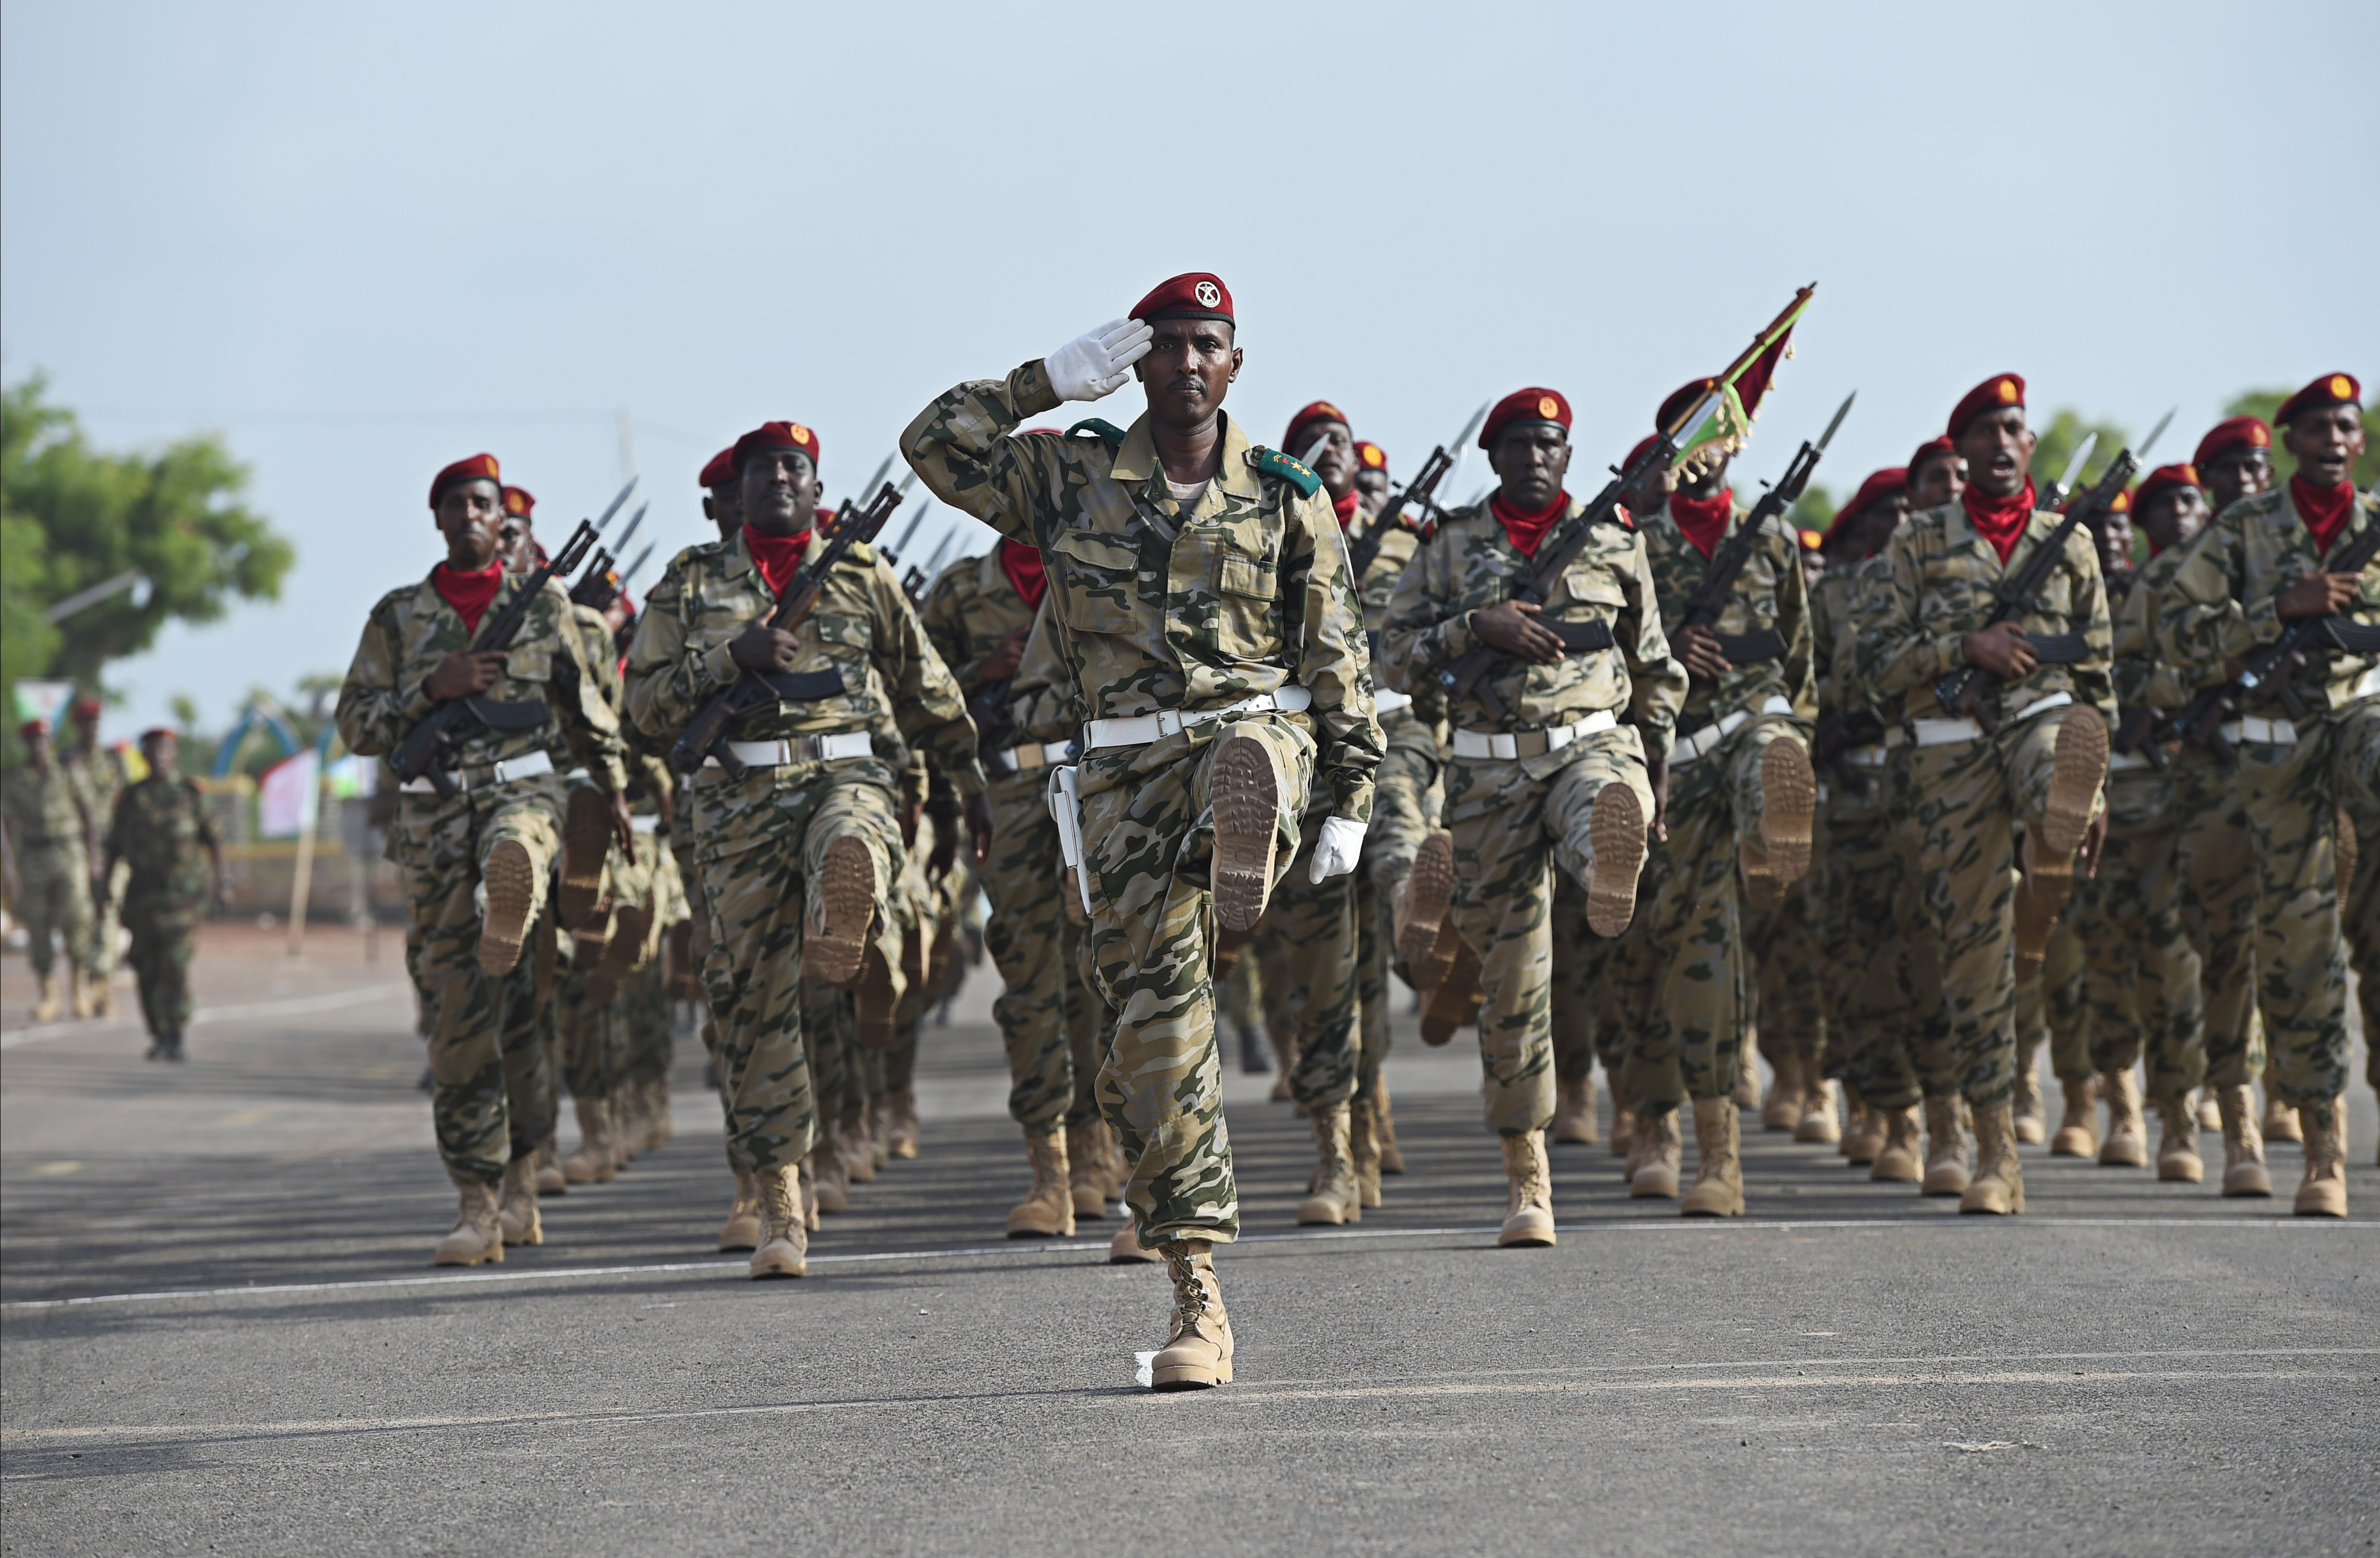 Djiboutian Army members march during the Djiboutian Armed Forces' (FAD) 38th anniversary celebration June 6, 2015 at Camp Cheik Osman, Djibouti,.  The FAD is comprised of 6500 Army, Air Force and Navy personnel. (U.S. Air Force photo by Senior Airman Nesha Humes)